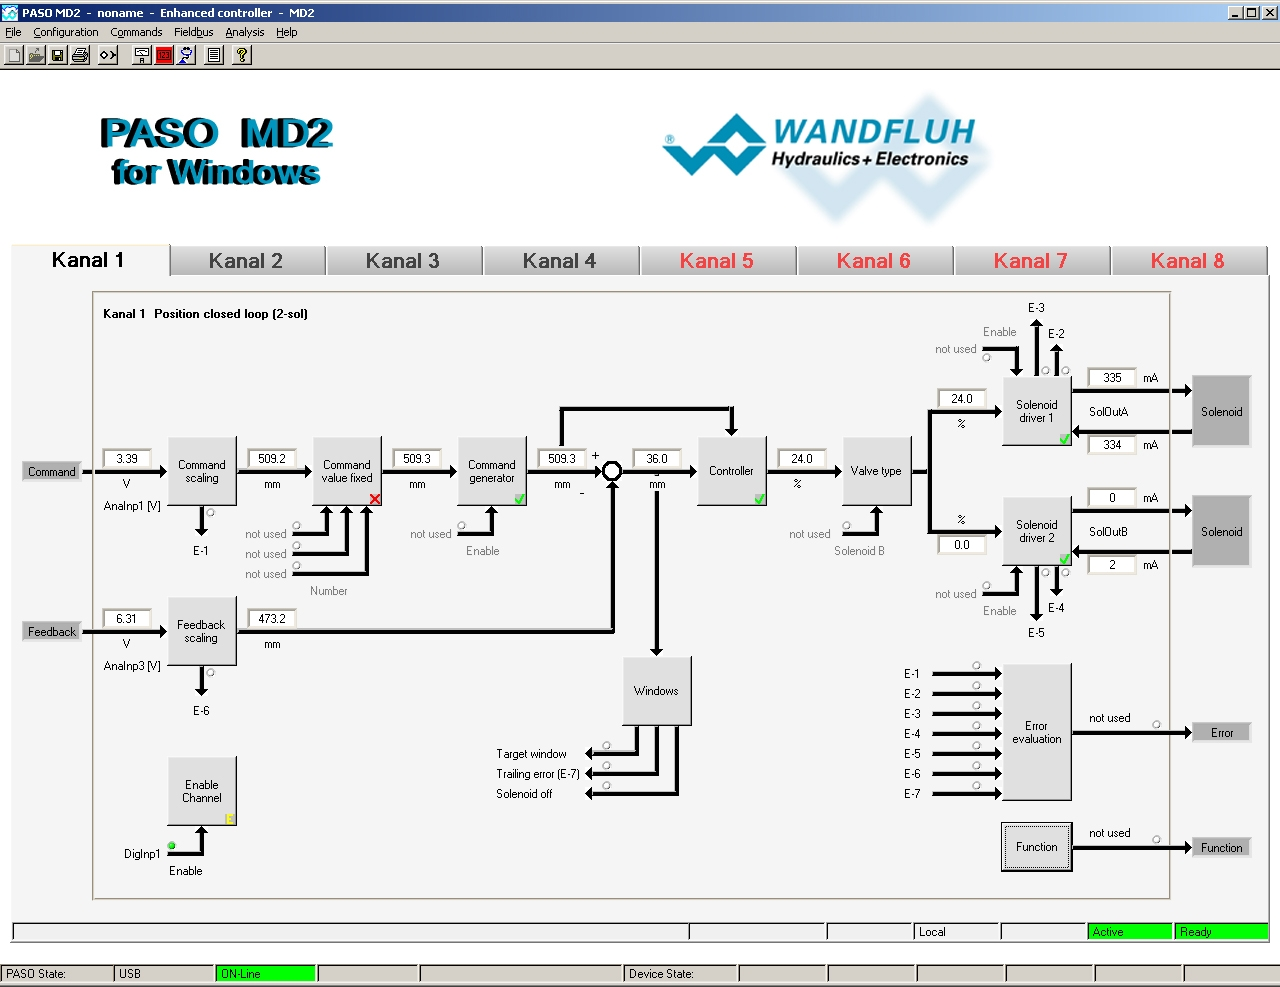 PASO Operating Software